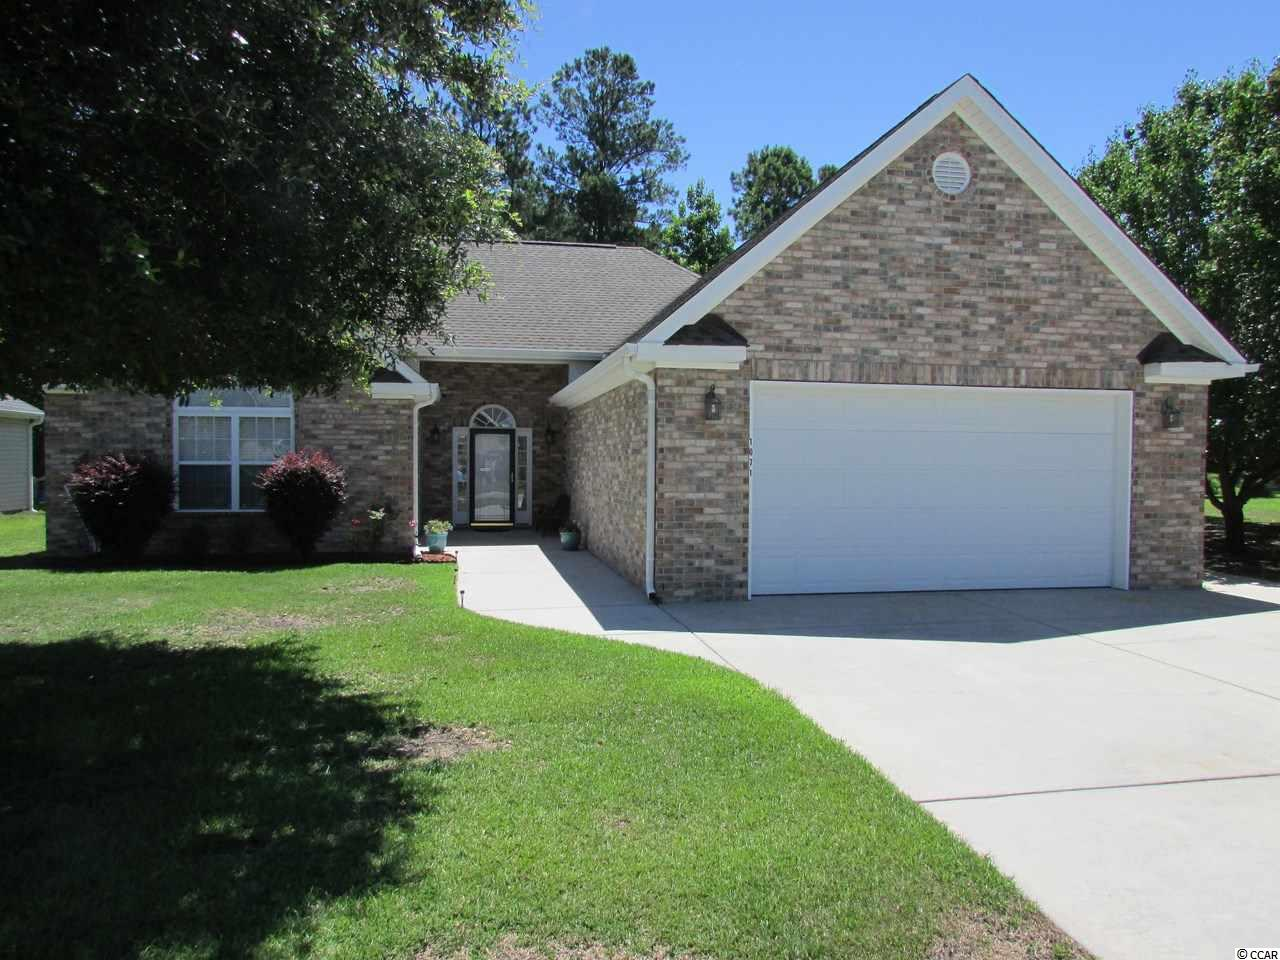 This is a MUST LOOK! As of 7-10-19 there are only 4 listed and this one is the lowest priced of the 4 and it is BEAUTIFUL. Maybe the best home you can see in the area in this price range. A regal front to what appears to be the BIGGEST lot in the neighborhood. The Lot to the right is a buffer zone leading to the lake (Not public access) so the home owners have planted Bradford Pear trees to make it their own private park. Cathedral ceilings in the living room with the Fireplace just left of the French door enclosed Carolina rm. A HUGE screen porch looking out onto the lake on the back corner of the rather large lot. Imagine coming out of your Huge Master bedroom with its Huge walk in closet, trey ceilings, master bath with dbl. bowl sink, garden tub and walk in shower (and private water closet). There is also a large garage with laundry tub, 80 gal hot water heater and large storage area above garage with drop down access latter and whole attic fan. A propane gas fireplace. An irrigation System. A Mana Block plumbing system. Also a built in Murphy bed in front bedroom Imagine sitting at your breakfast table looking out over the lake at the ducks and swans. Lake and common area maintenance is included and rv/boat storage is available. Imagine your guests out on your enormous screen porch enjoying that same view plus the self made private park in the lot next store (aka buffer zone). Imaging the other beautiful homes in your neighborhood only 20 minutes to the ocean and just about every kind of shopping and eating experience you have every dreamed of. Imagine living the good life in an area that some call the land of milk and honey.